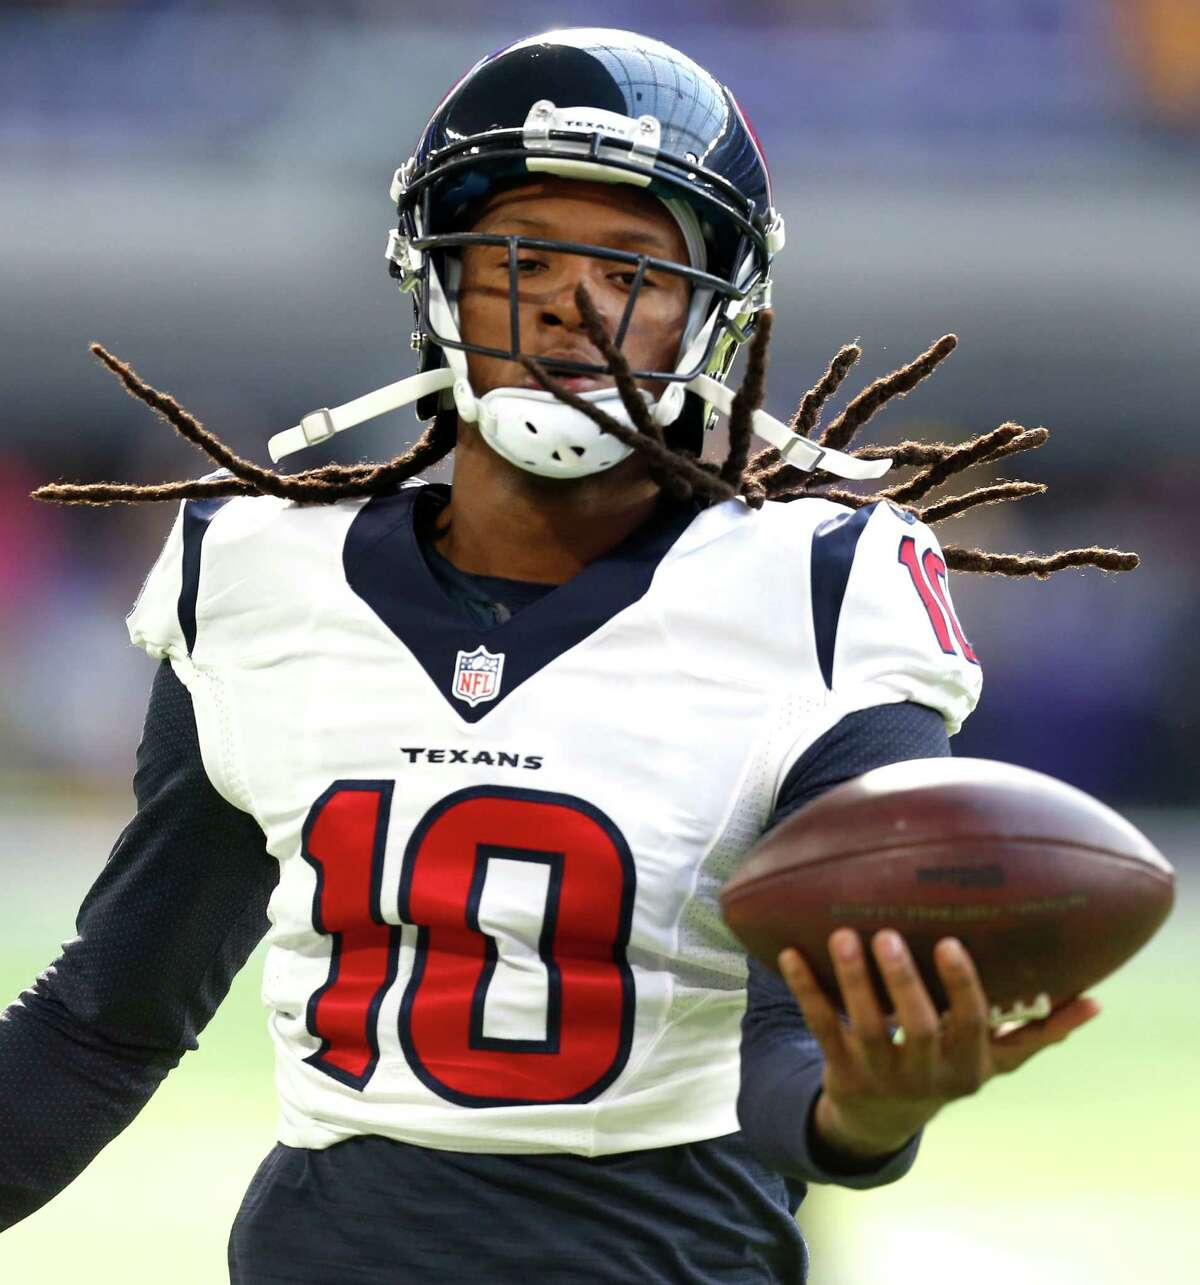 Houston Texans wide receiver DeAndre Hopkins (10) catches a football while warming up before an NFL football game against the Minnesota Vikings at U.S. Bank Stadium on Sunday, Oct. 9, 2016, in {city.